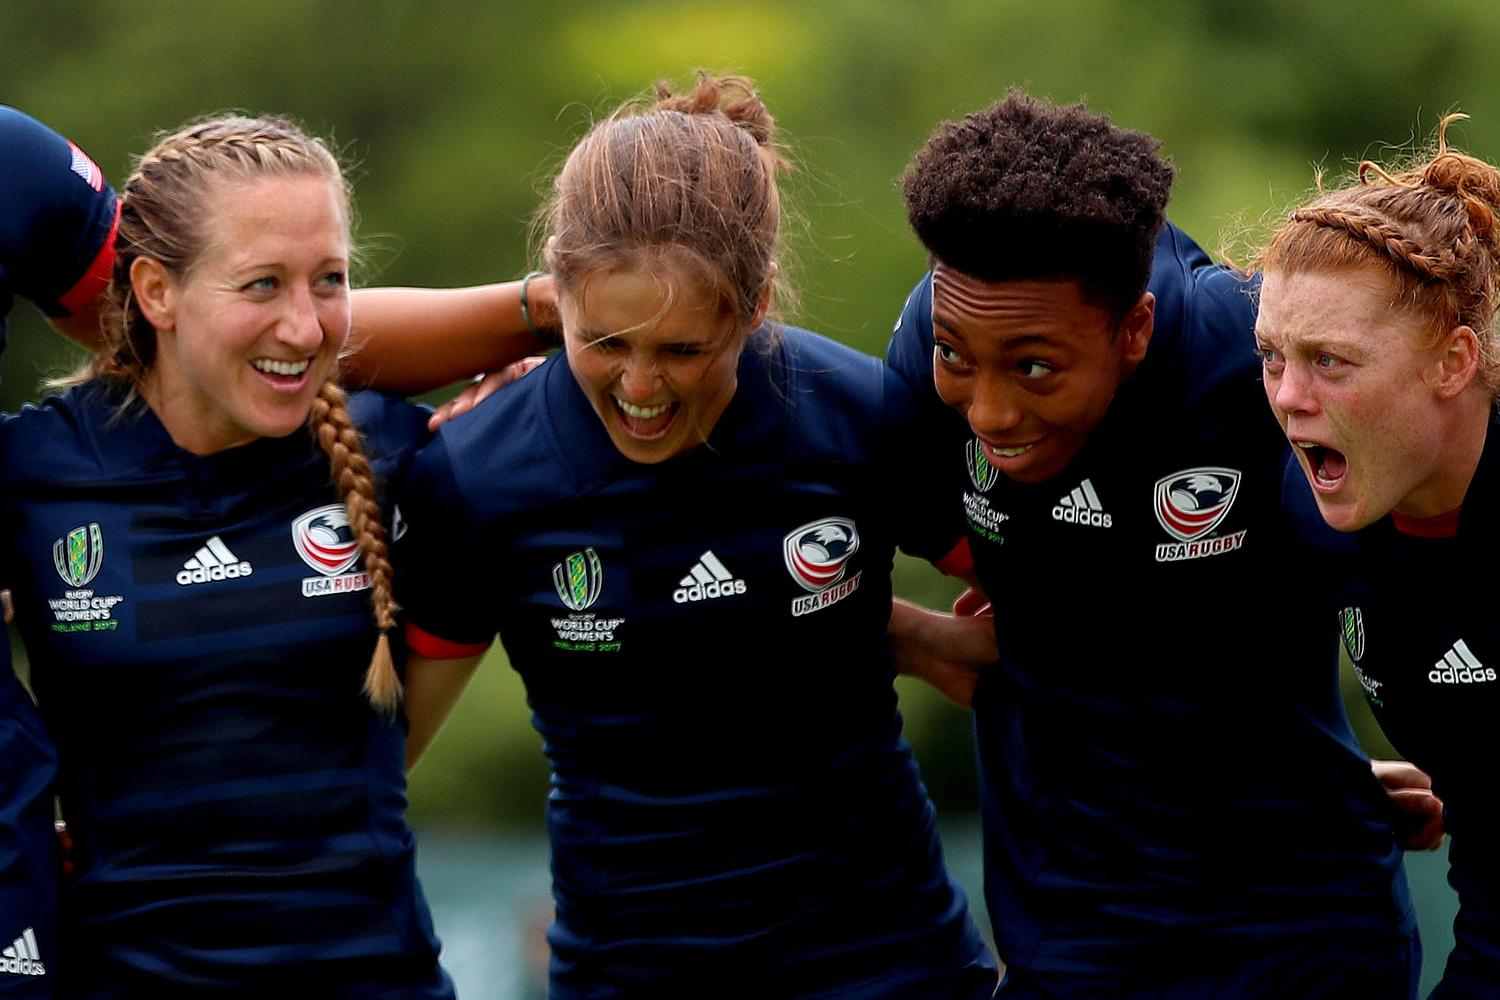 WRWC 2017:  USA motivated ahead of the England match